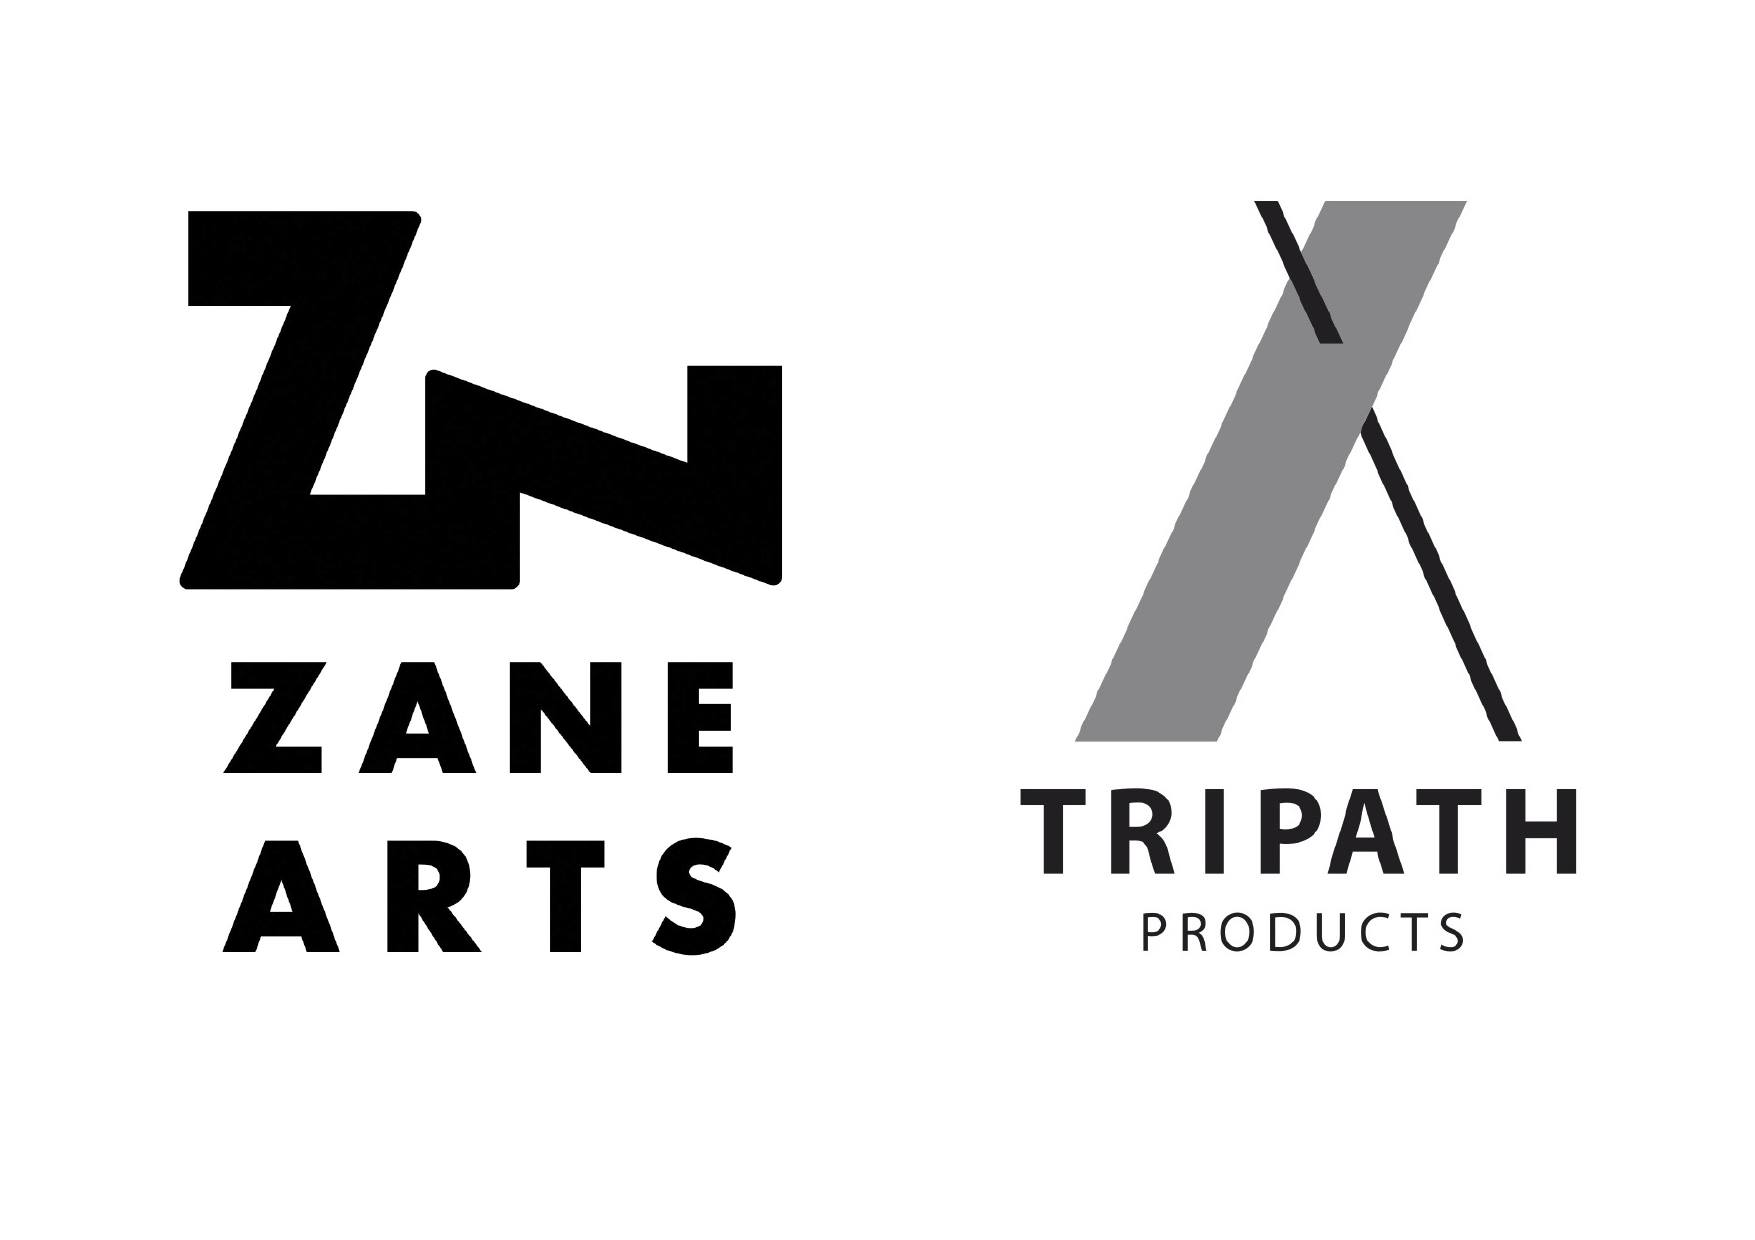 7/18.19 Zane Arts & Tripath Products Popup Shop